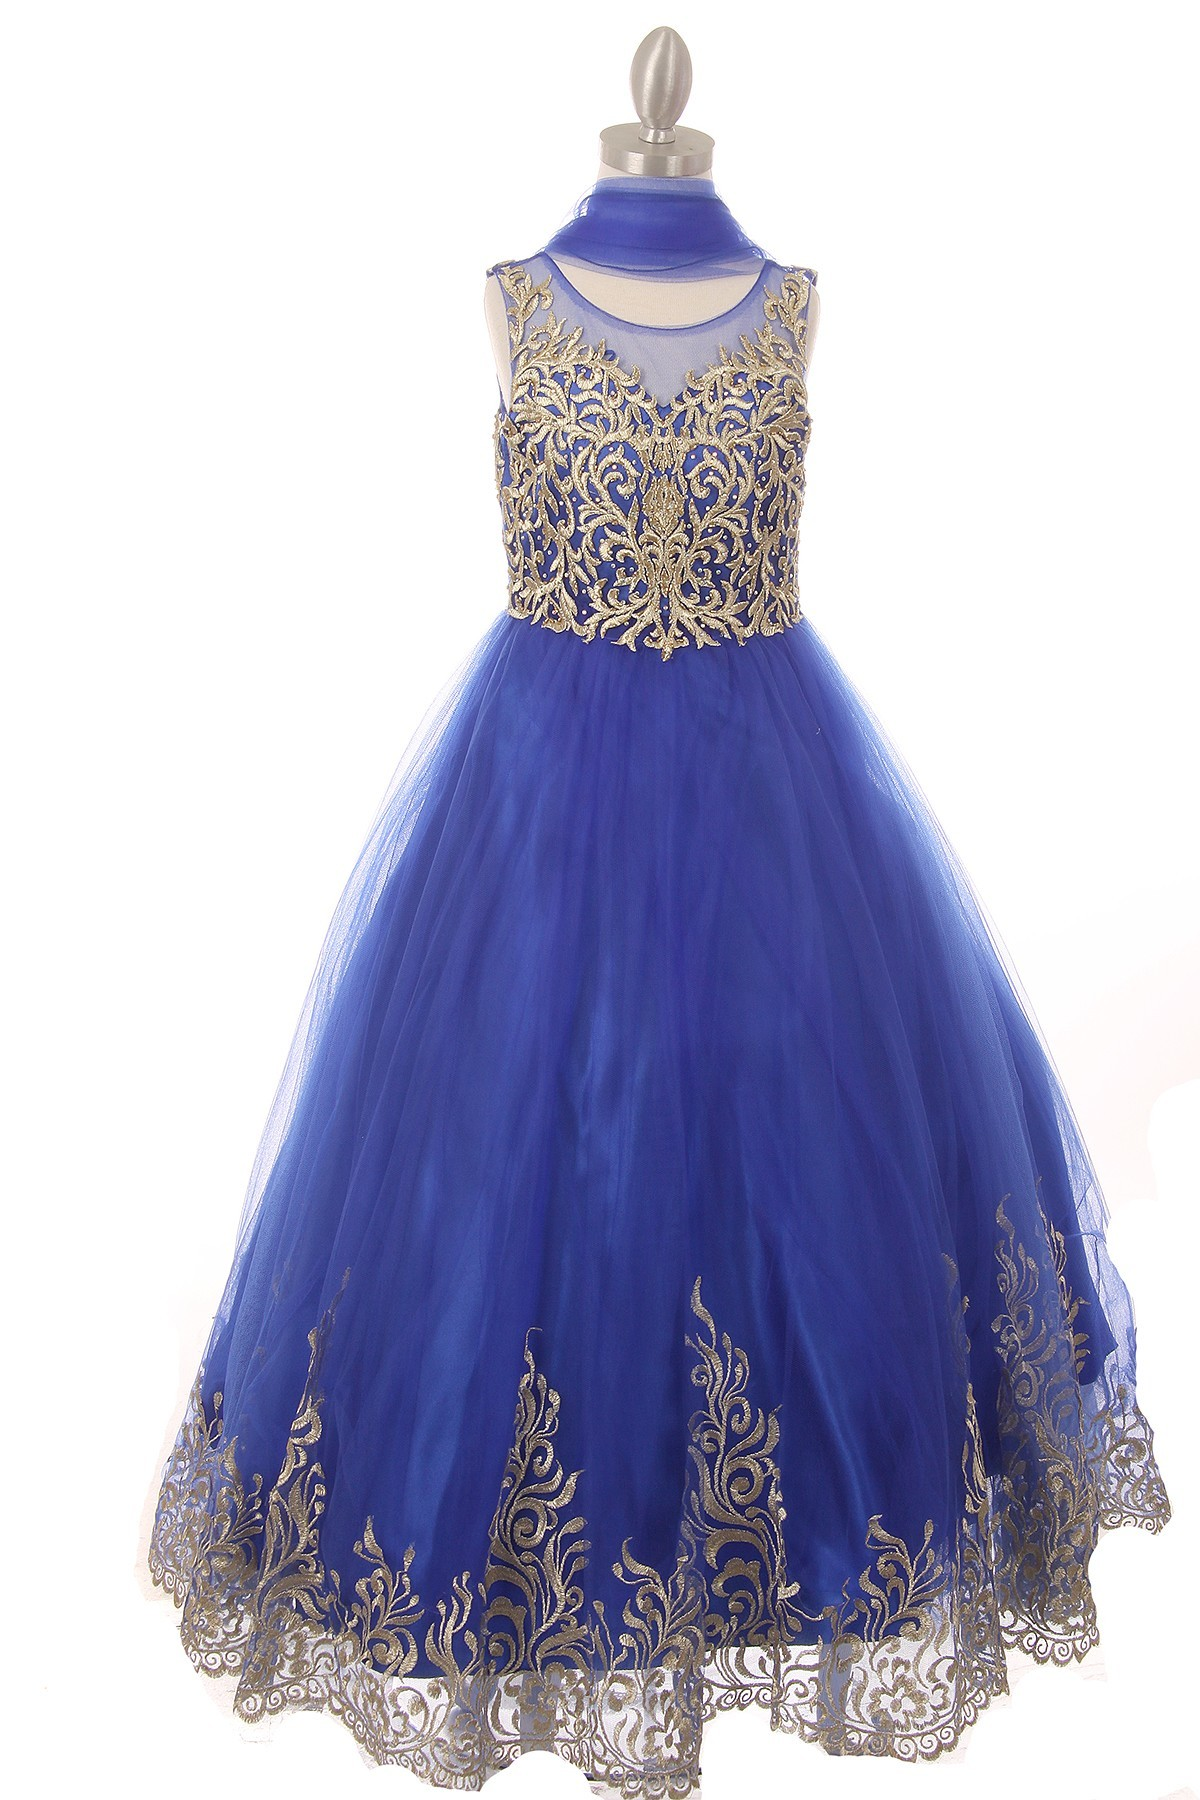 girls formal royal blue dress